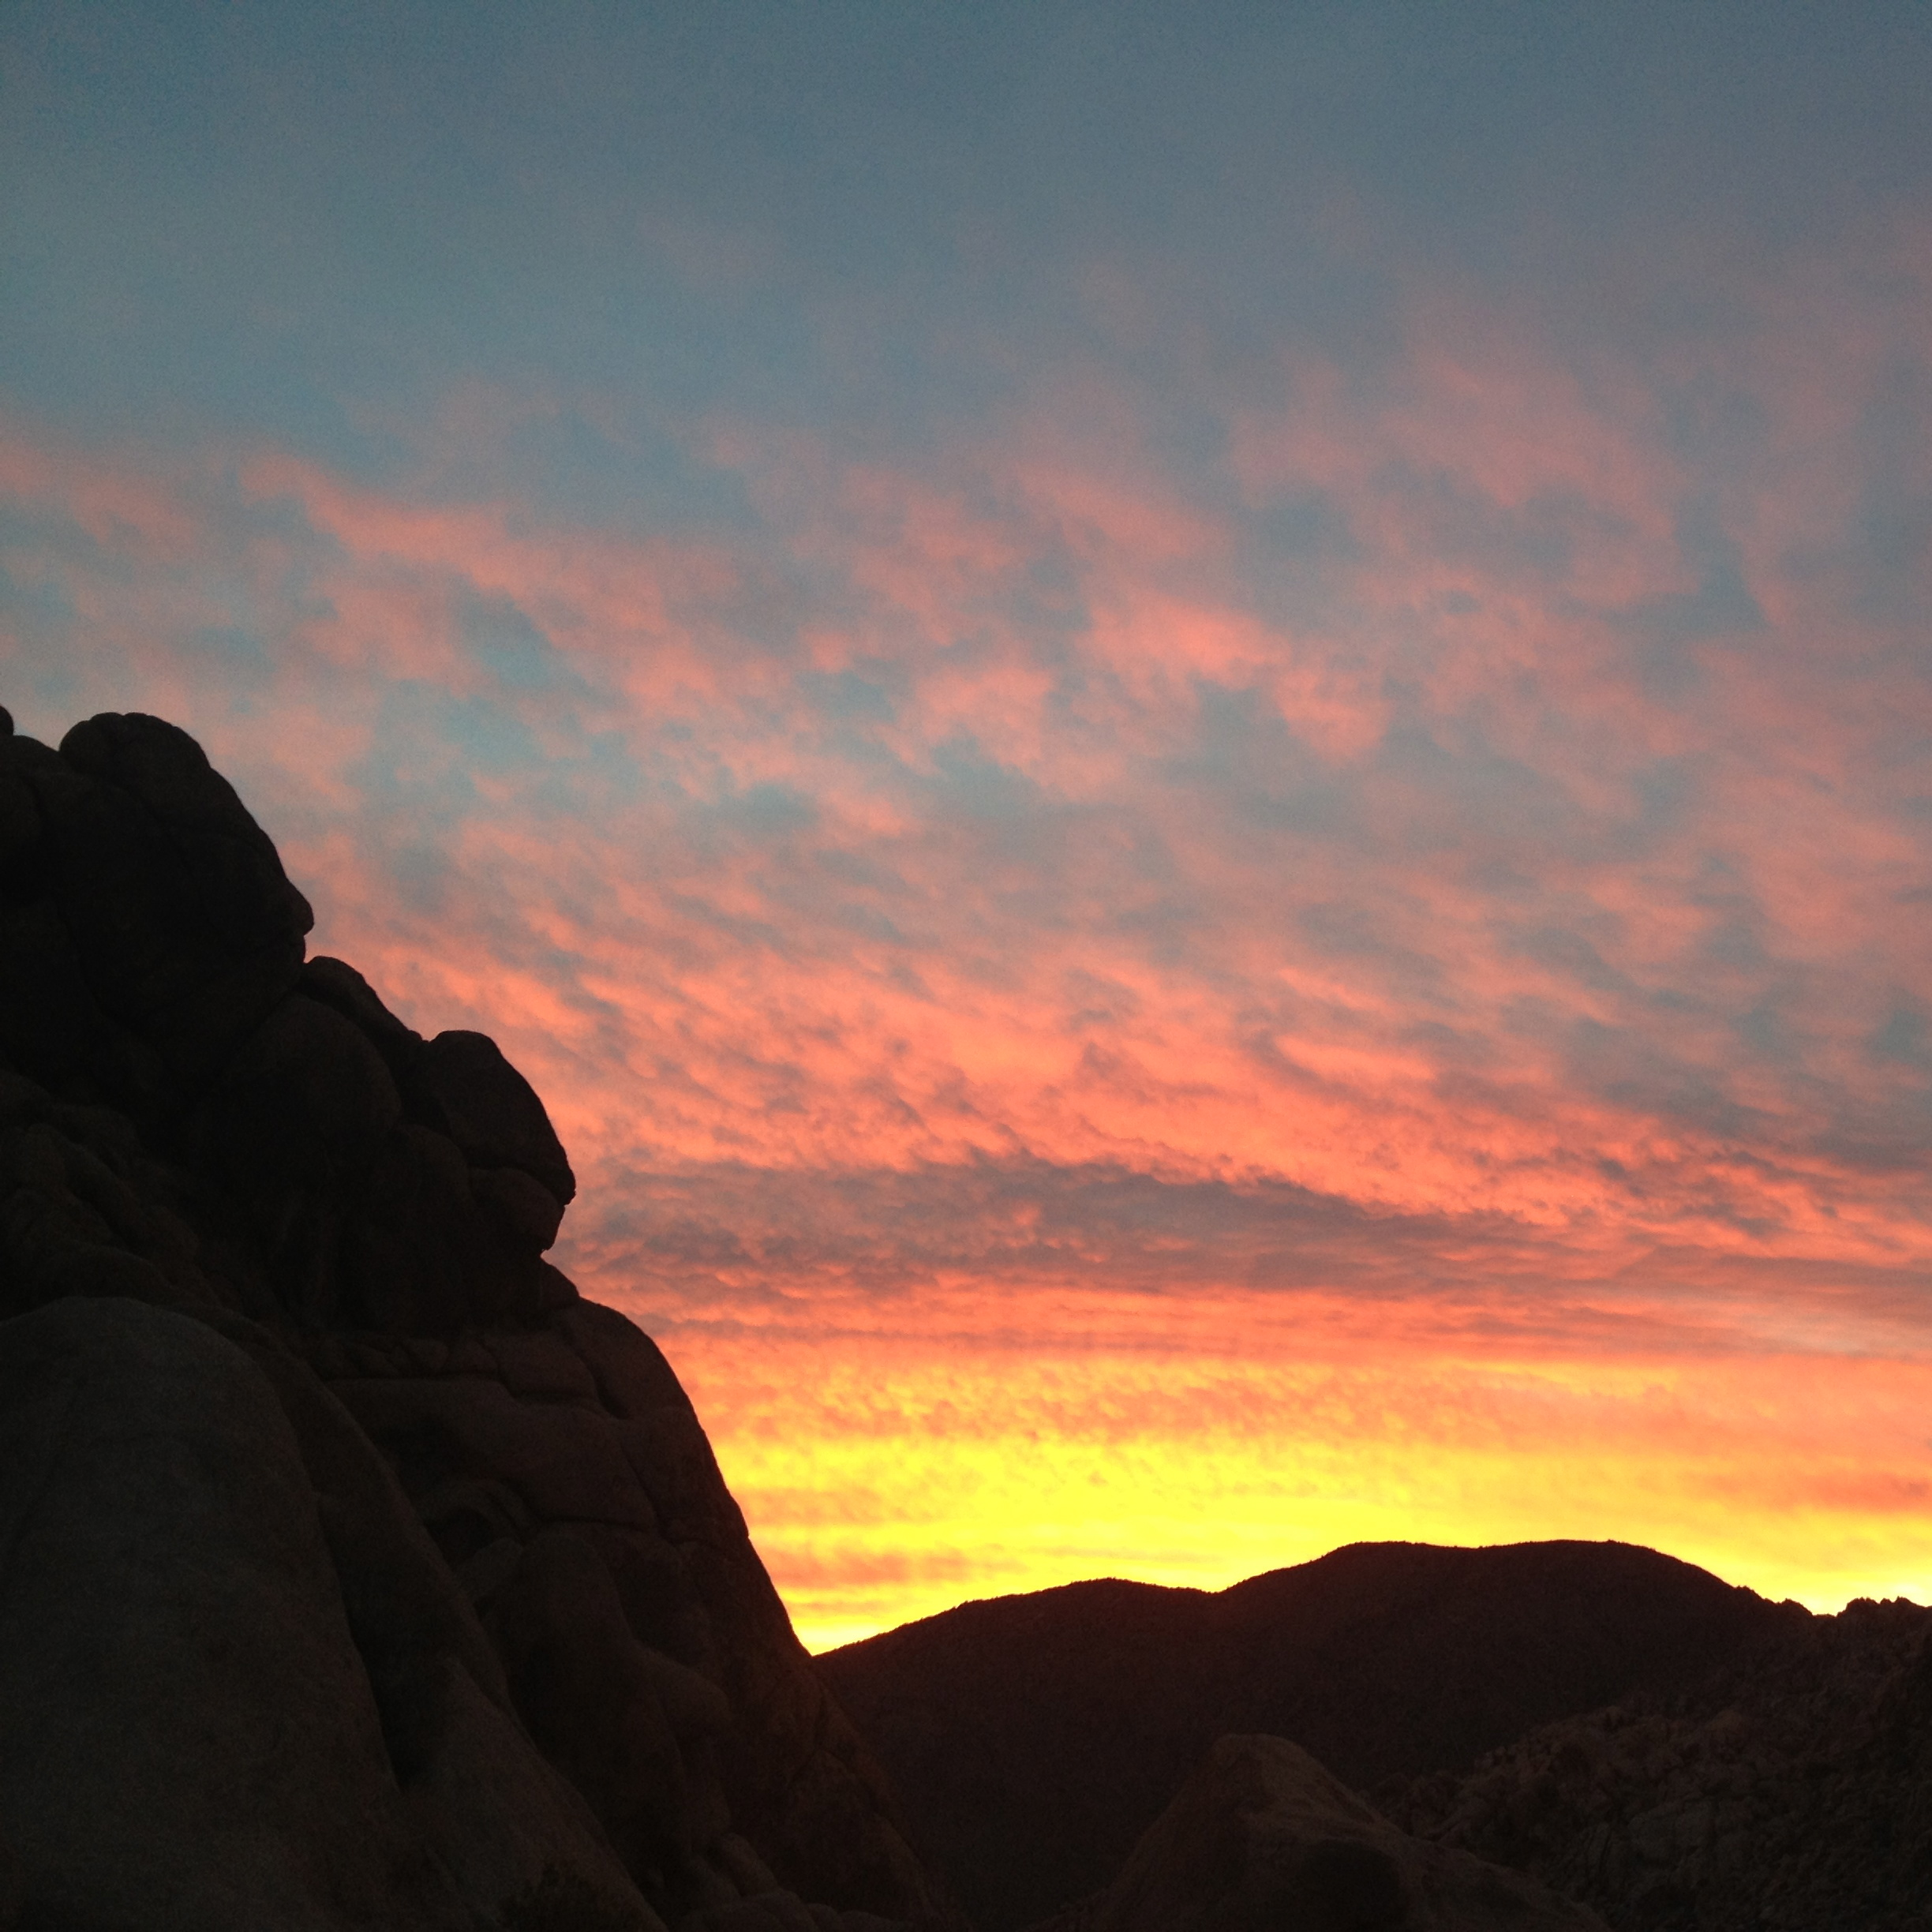 Sunset, Joshua Tree, California